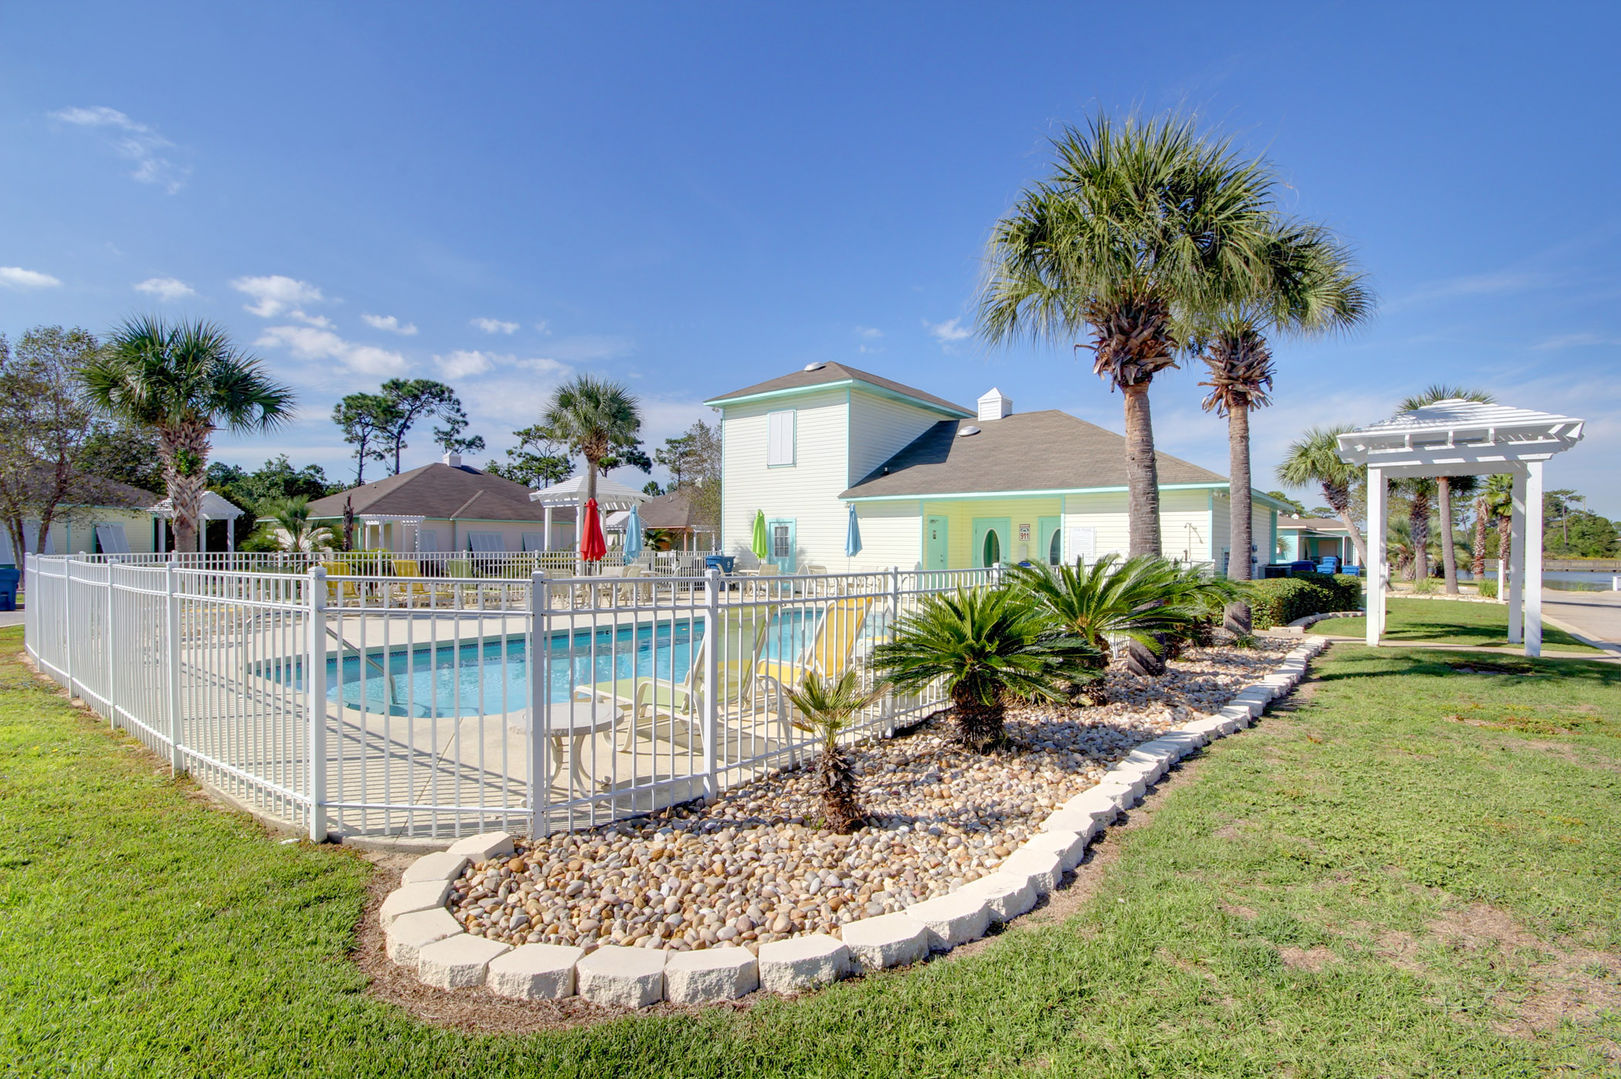 Soak up the sun and enjoy a relaxing swim in this beautiful, centrally located pool.